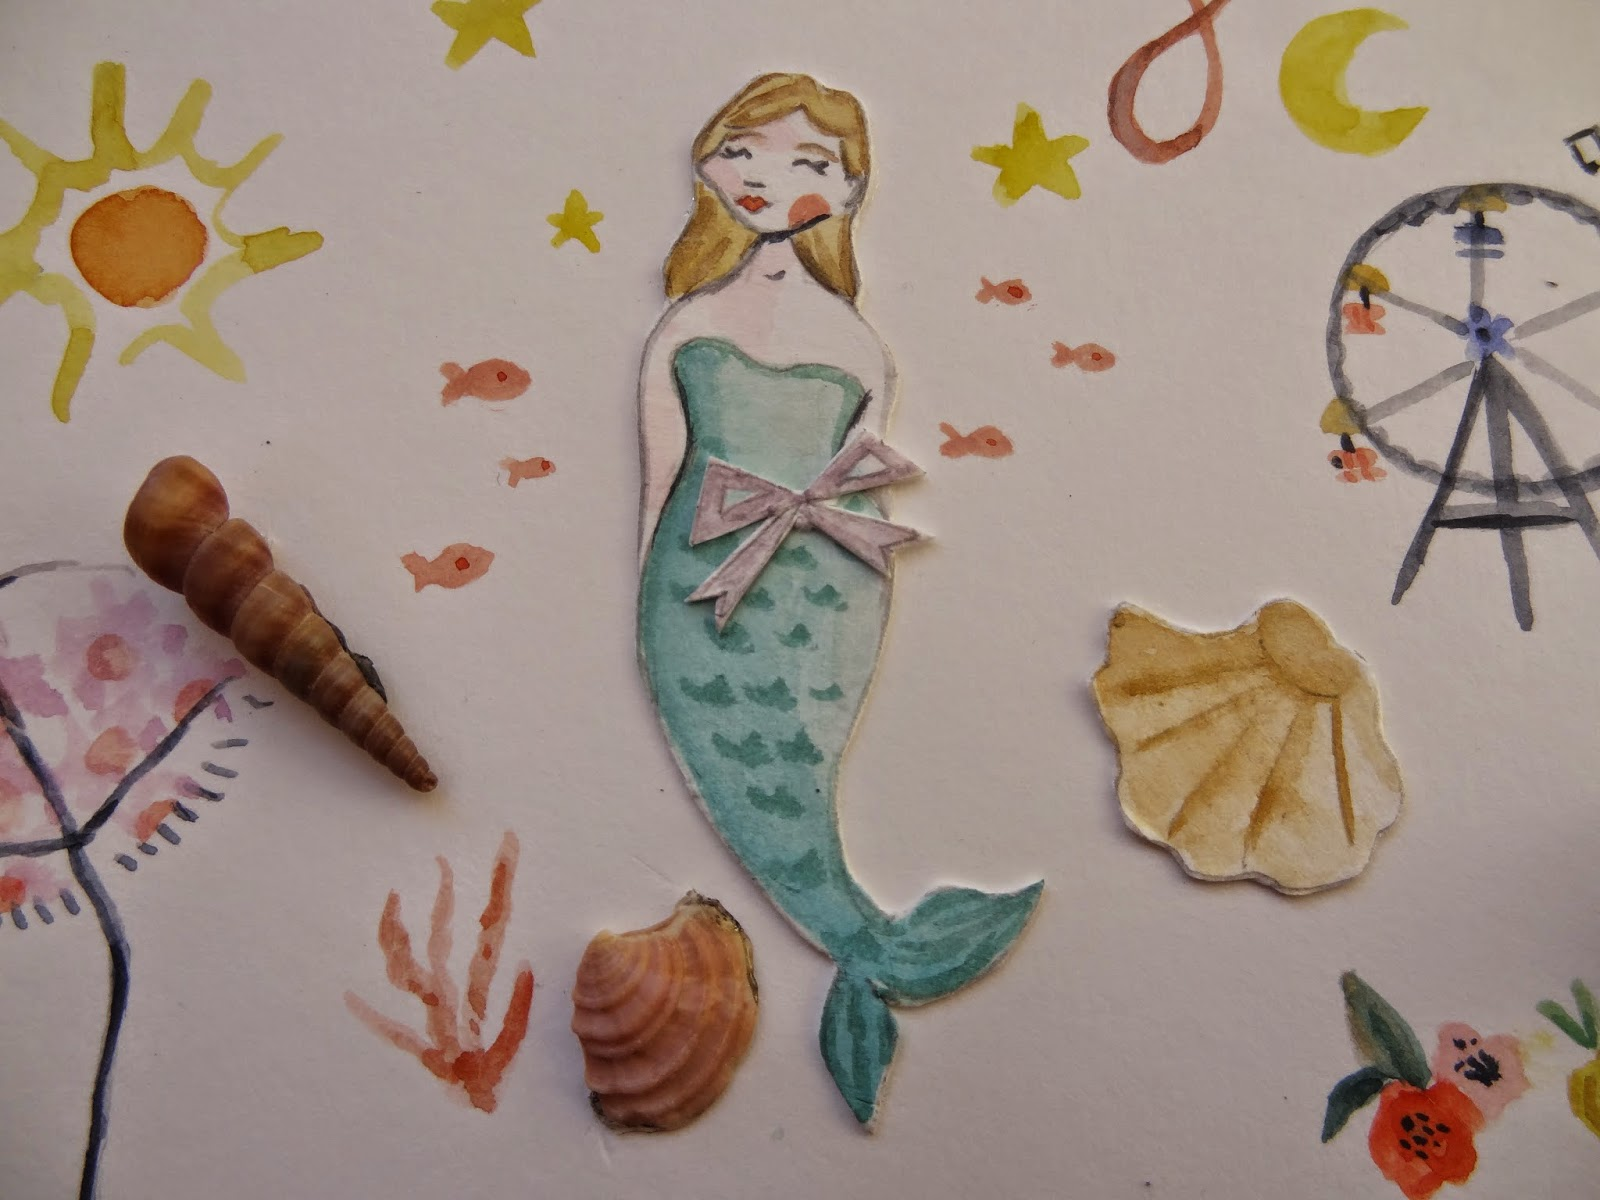 mermaid sea shell sun conchas sol mar ilustradora craft manualidades